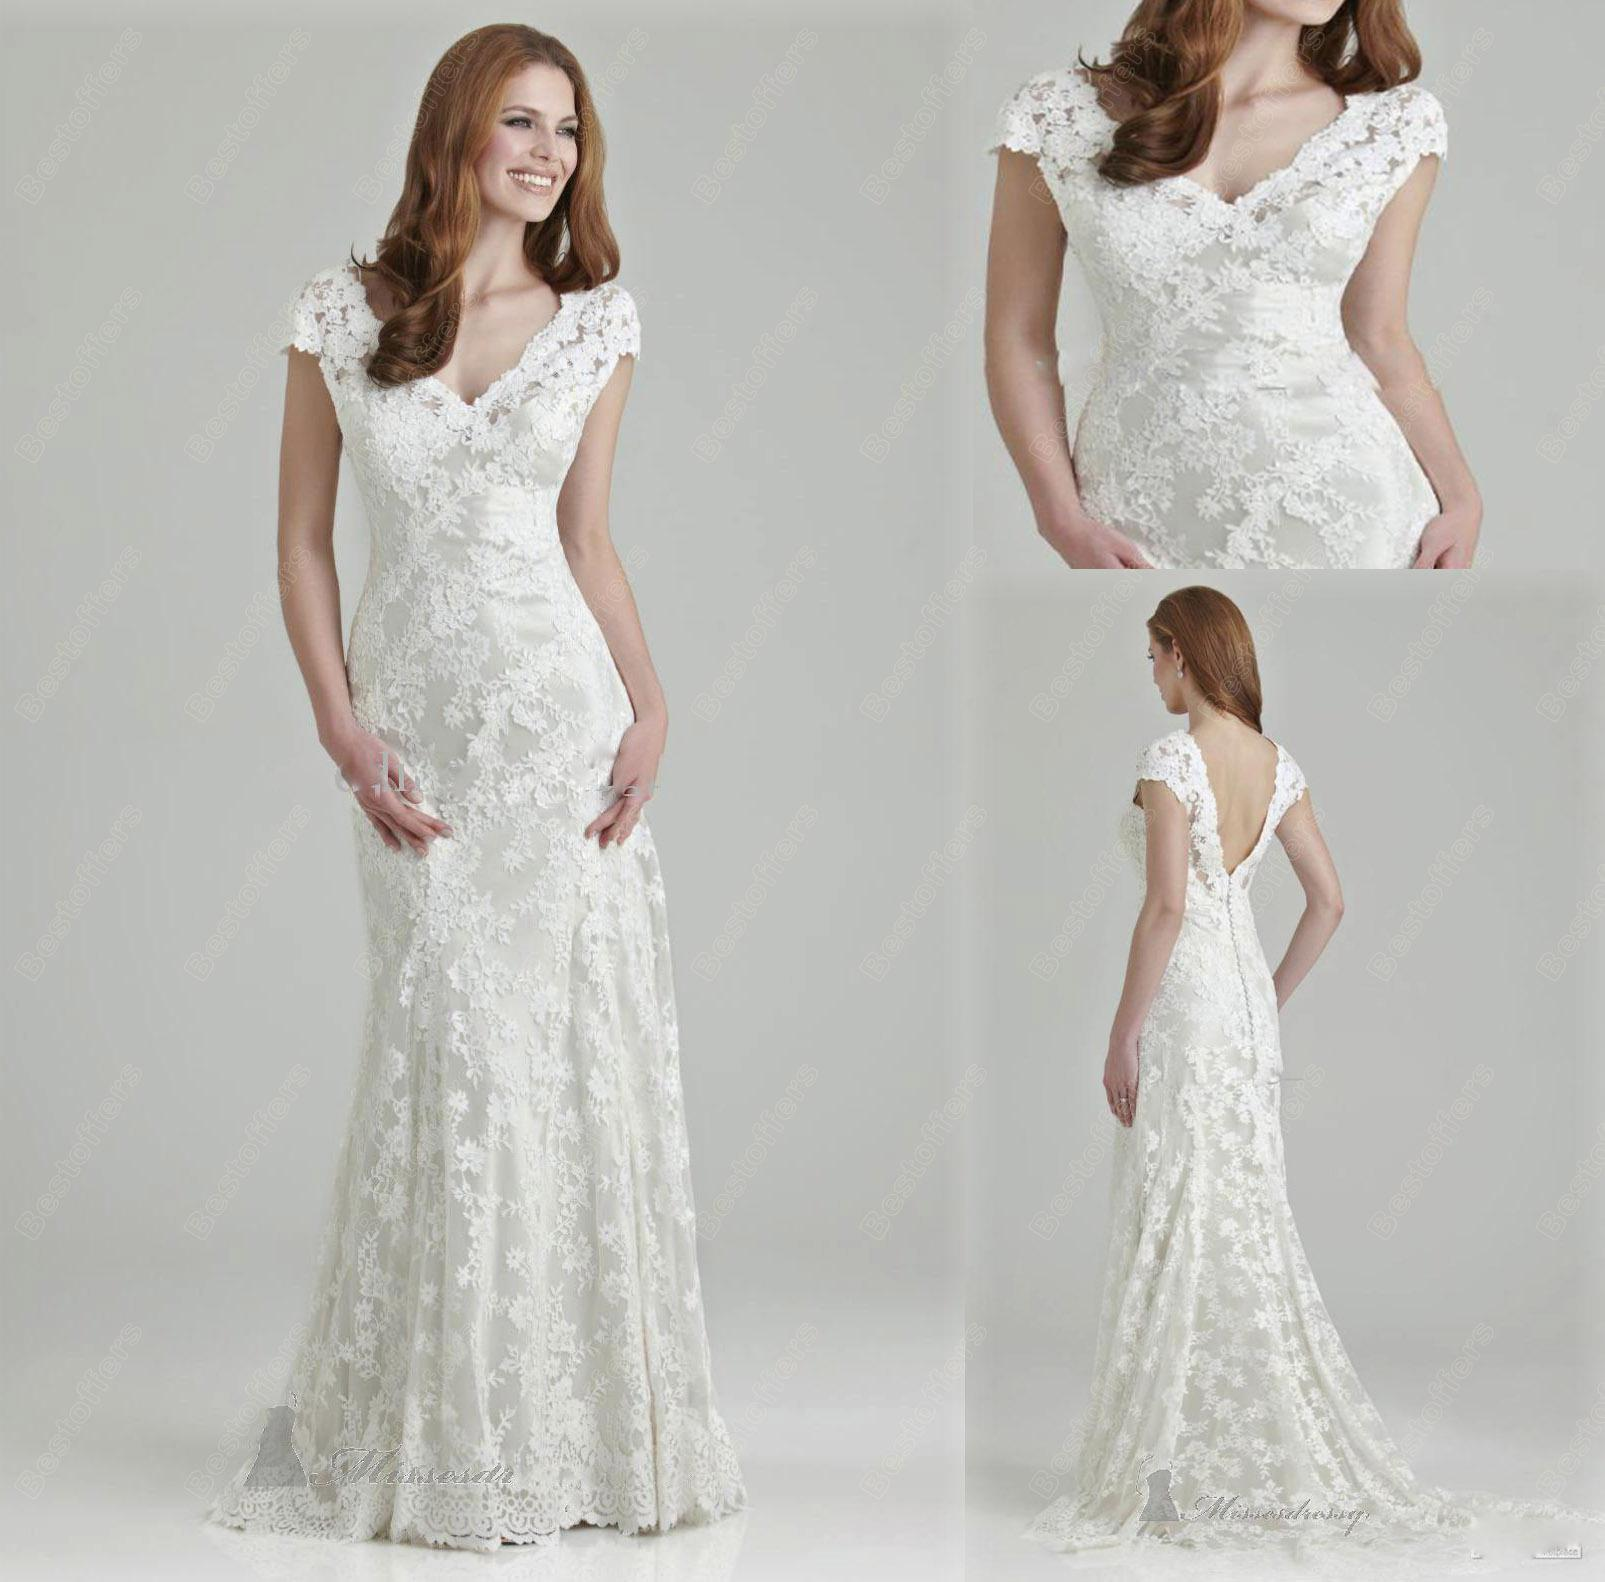 Affordable Wedding Dresses Cincinnati - Flower Girl Dresses